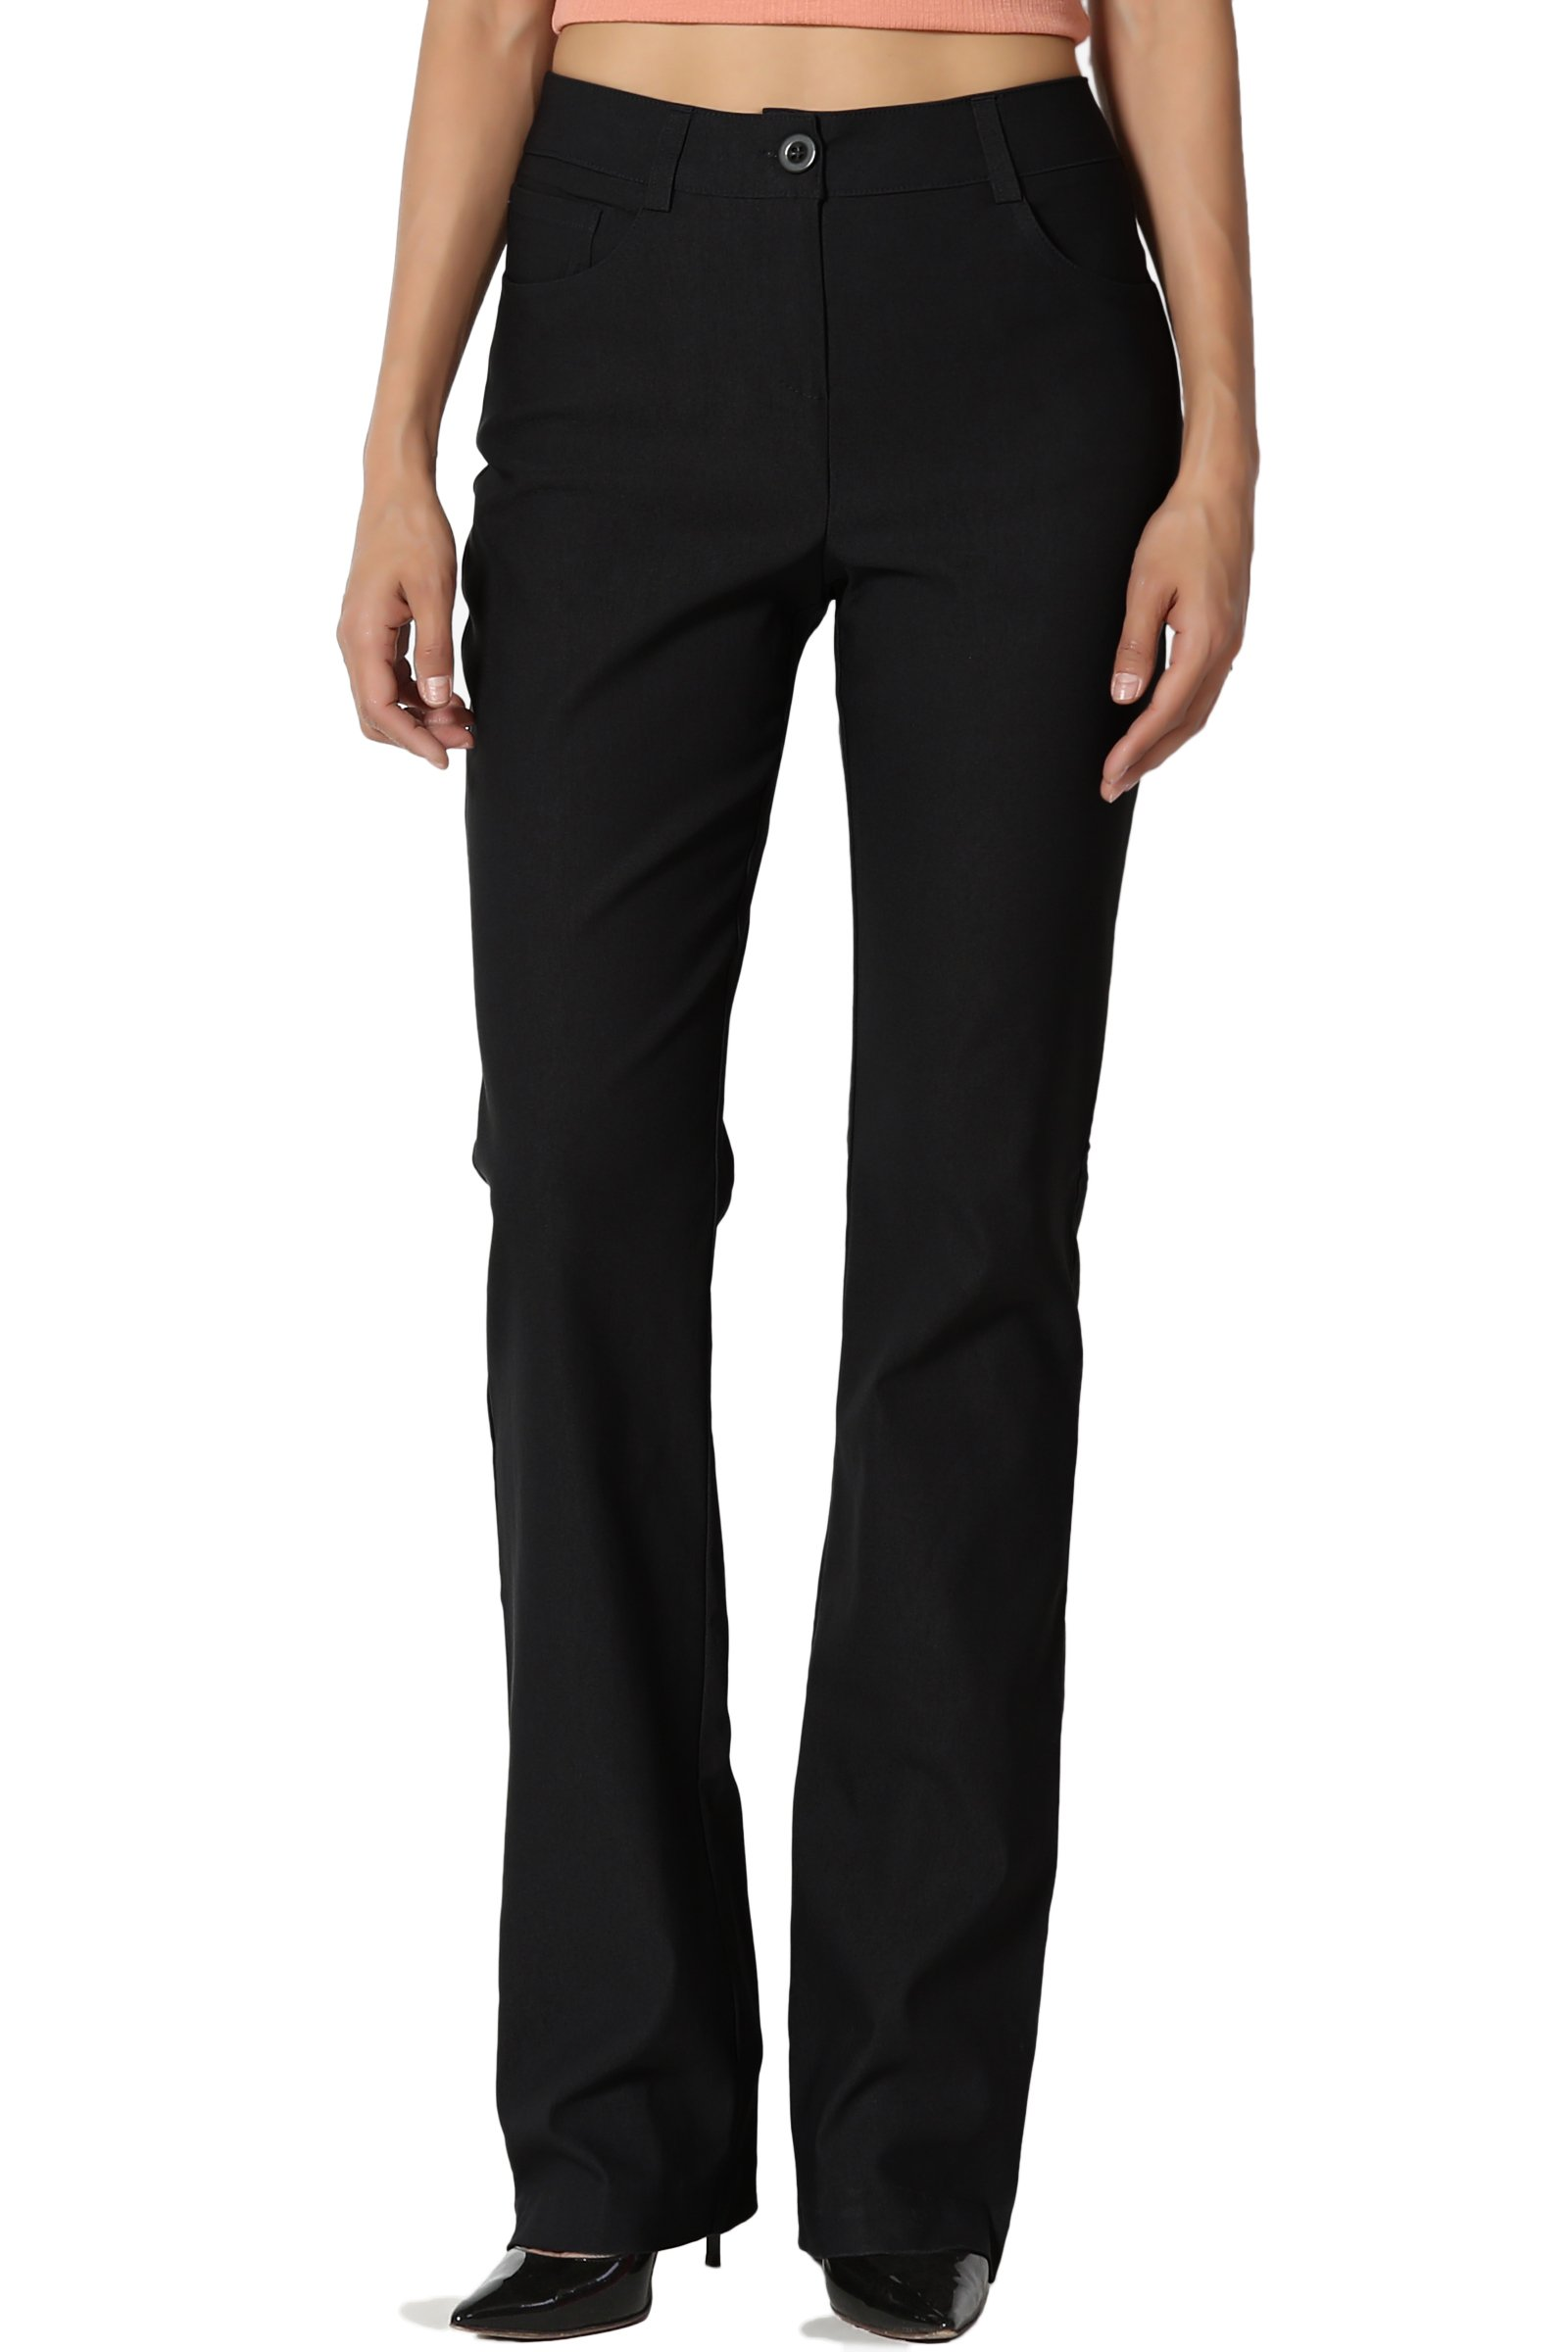 TheMogan Women's Straight Bootcut Stretch Woven Trouser Pants Work to Play Black L